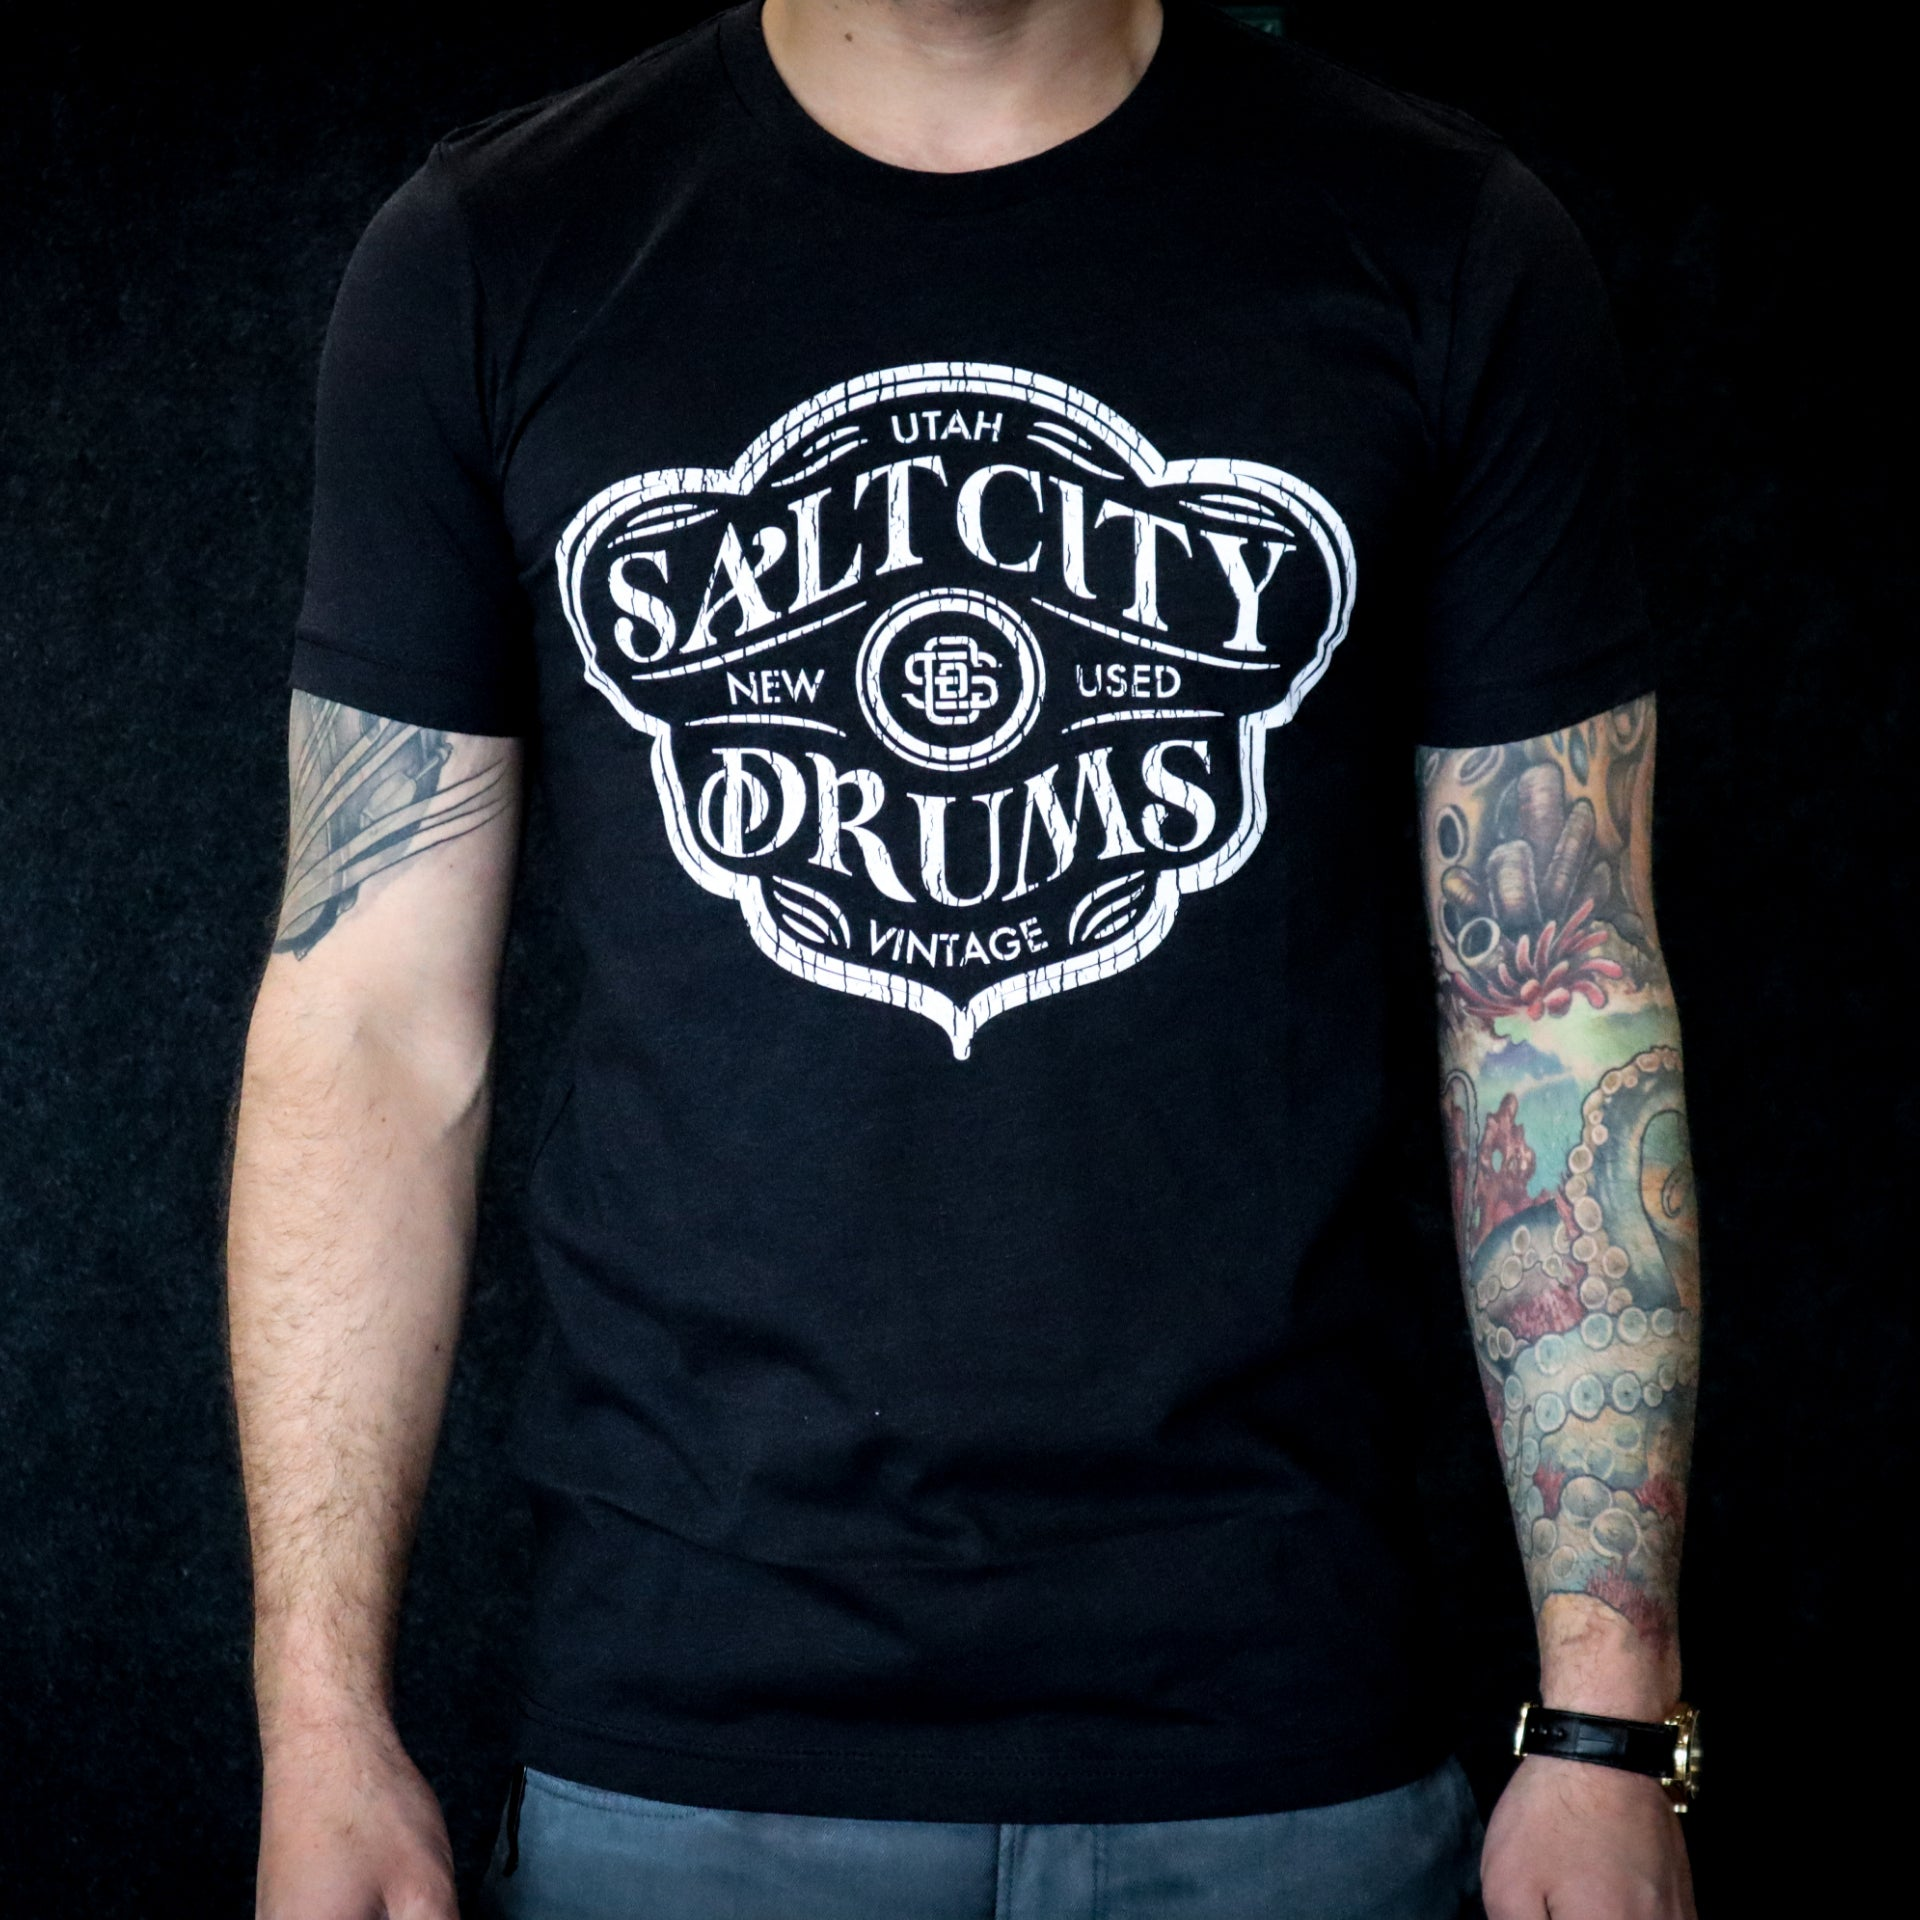 Salt City Drums Black Heather Tee w/ Vintage White Logo